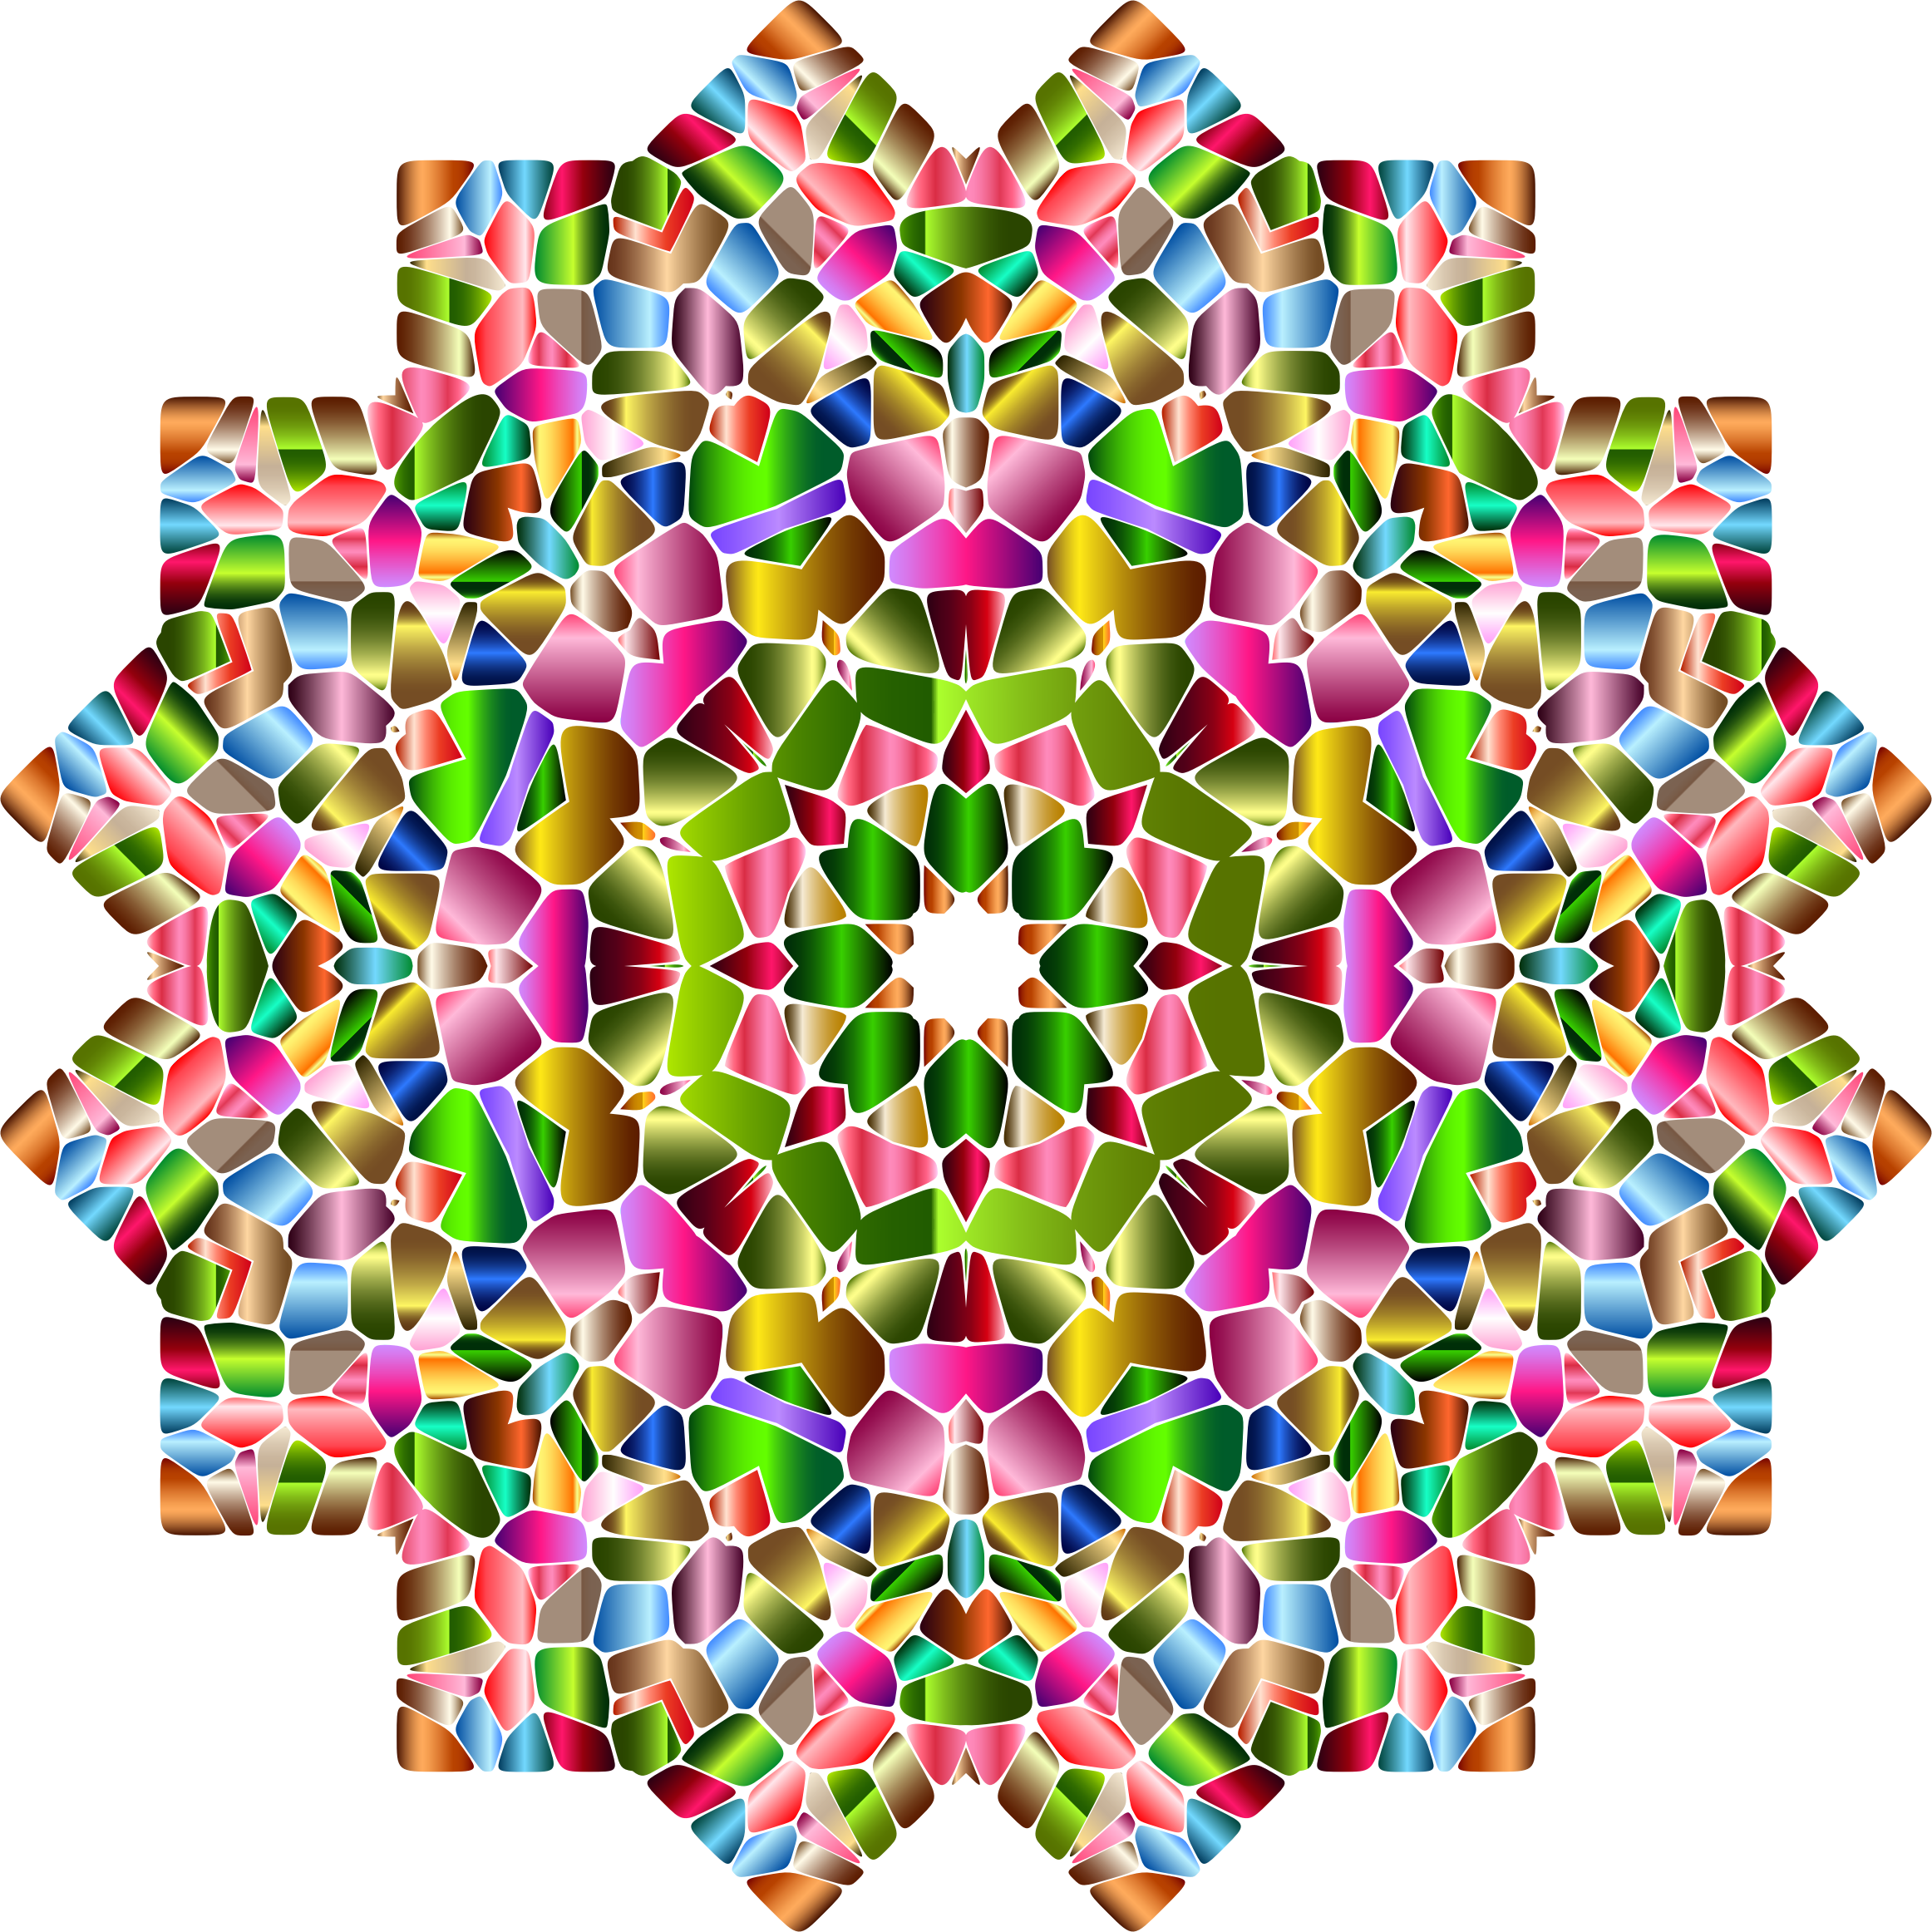 Chromatic Geometry 2 by GDJ